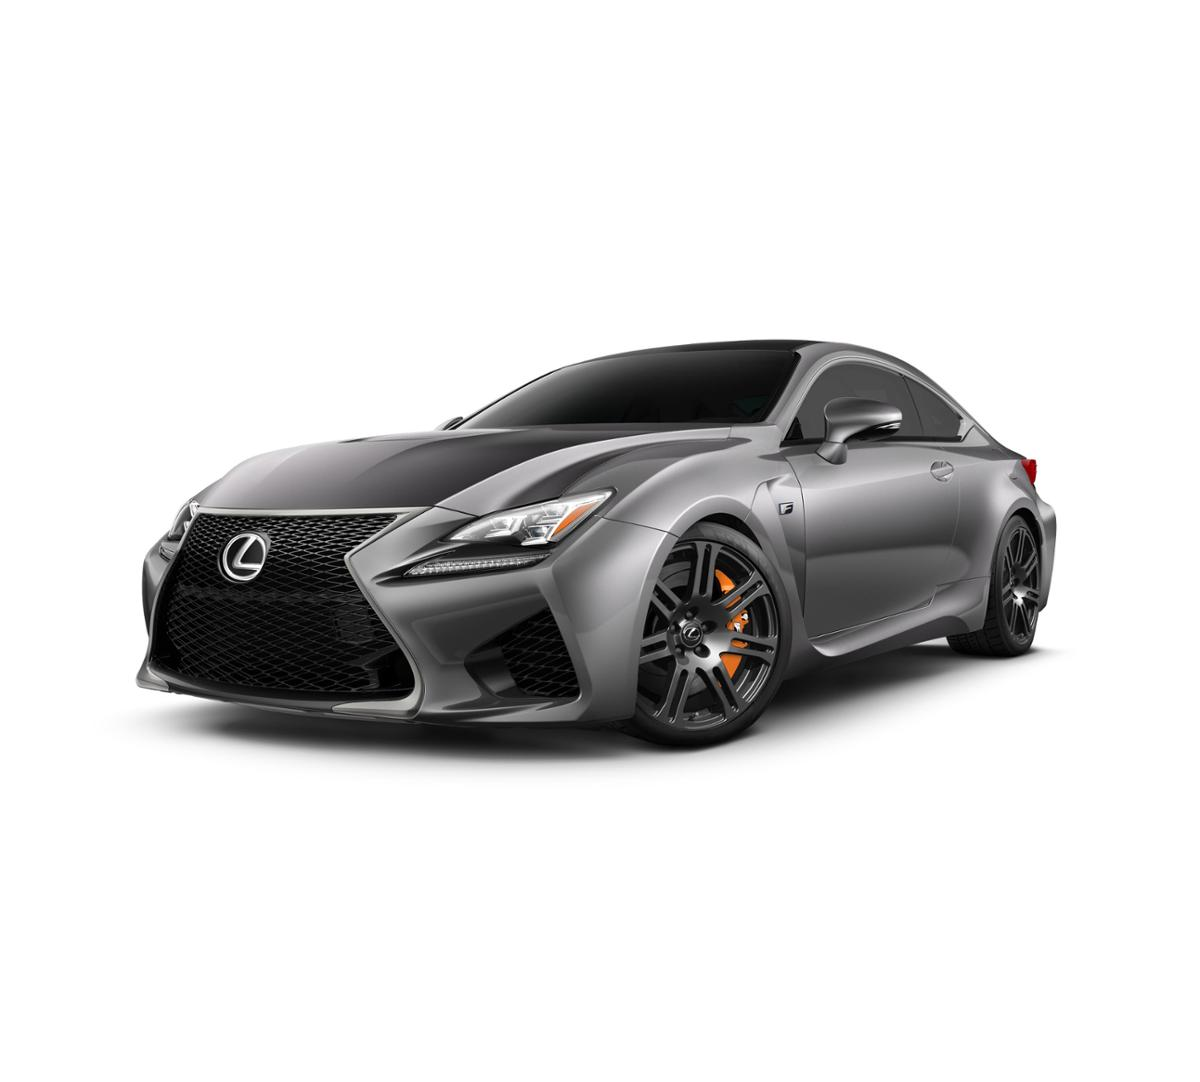 Towson Nebula Gray Pearl 2019 Lexus RC F: New Car For Sale